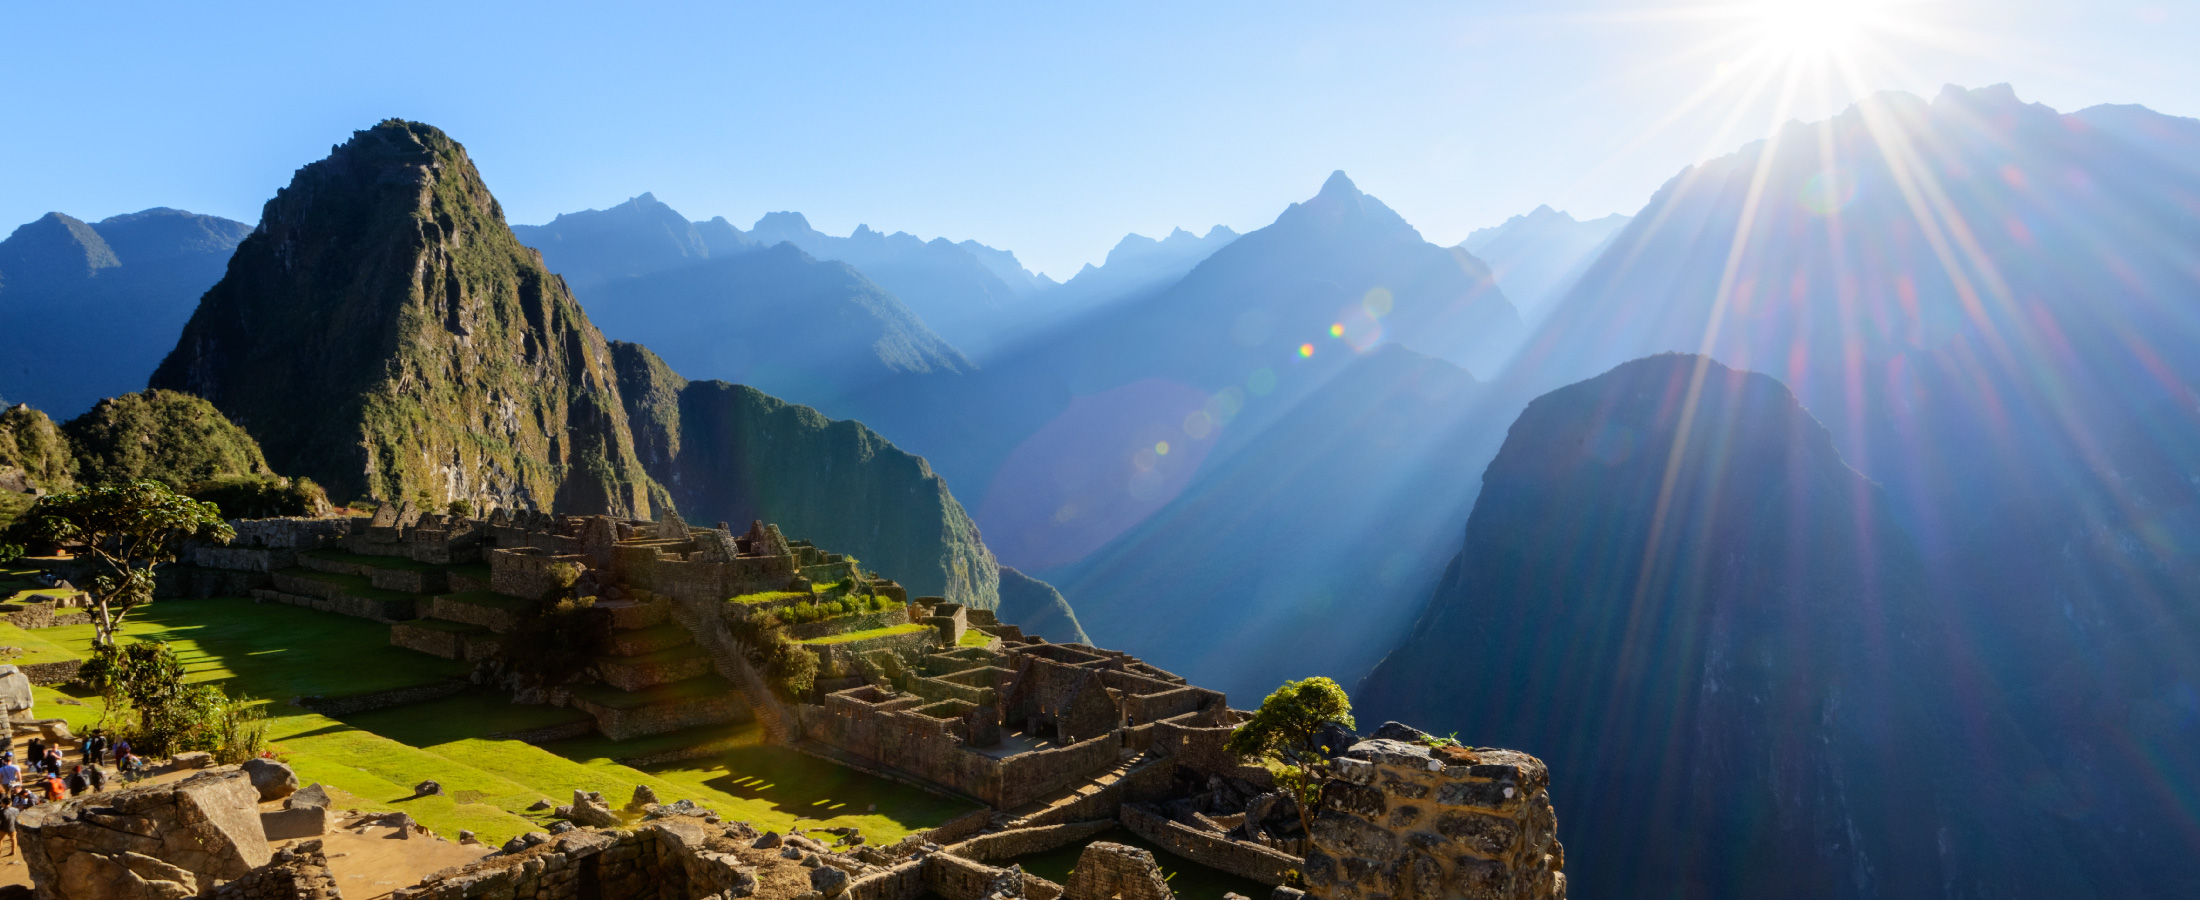 View from the top of Machu Picchu